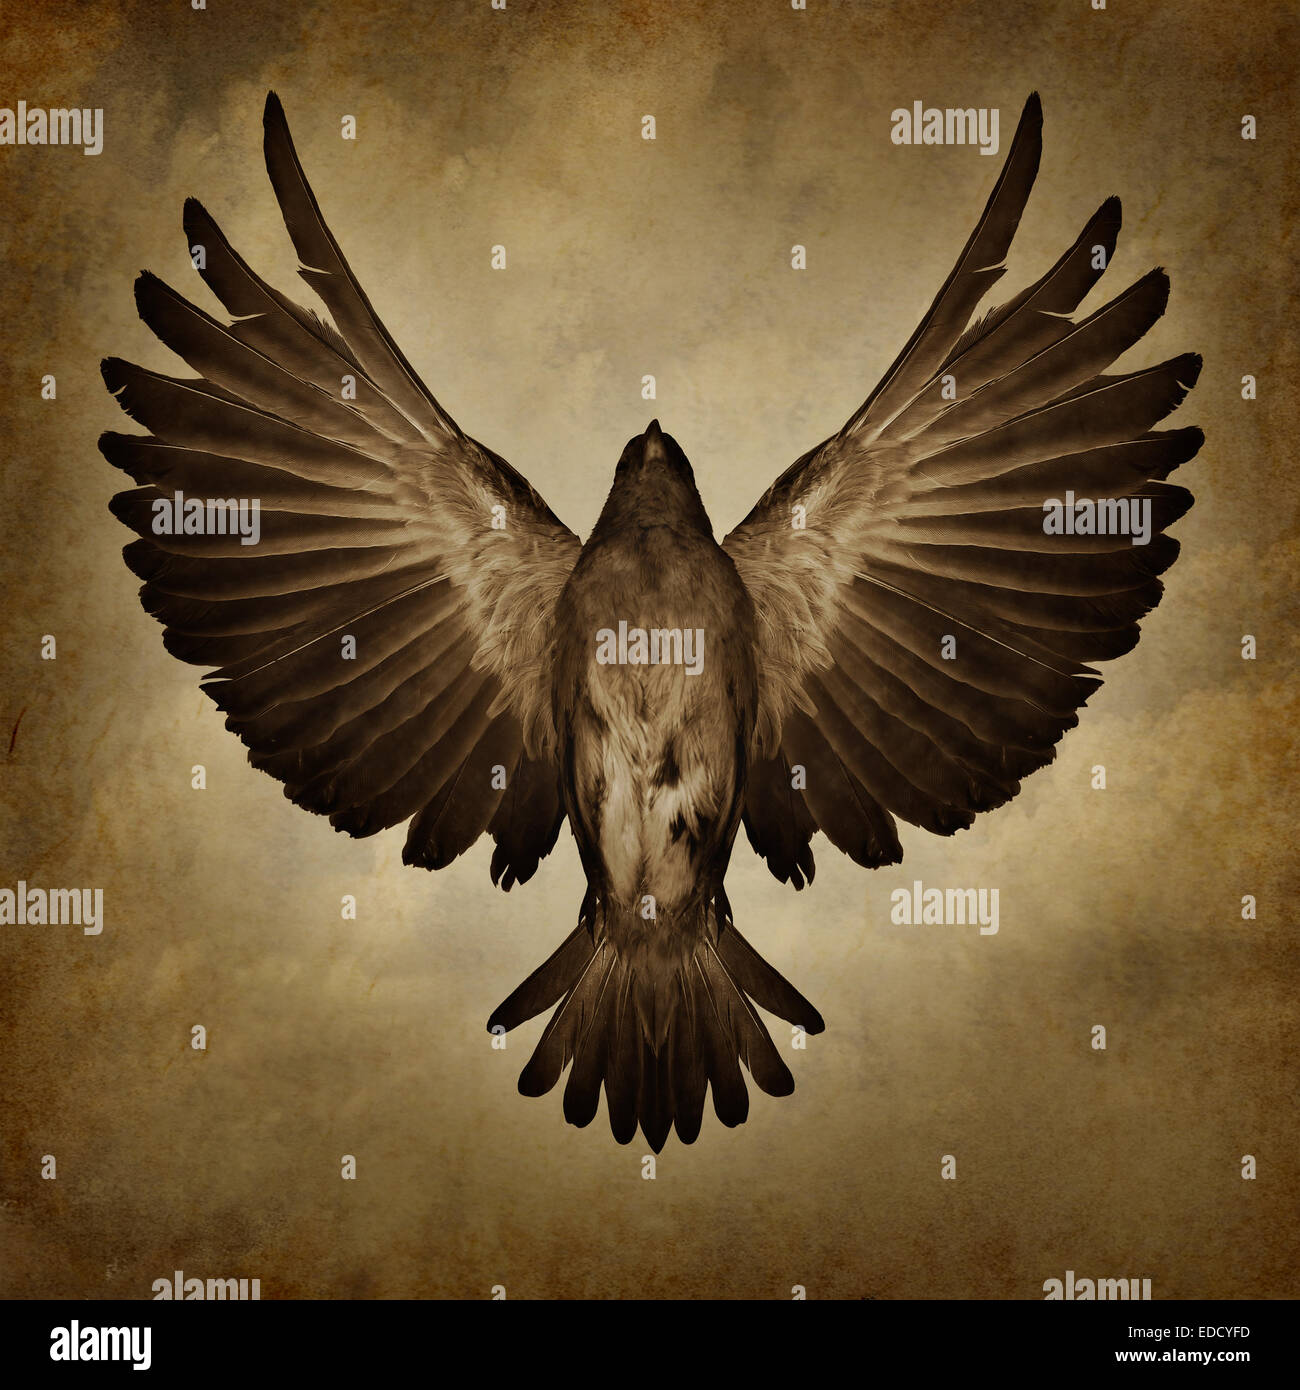 Wings of freedom on a grunge texture background as a breaking free and spirituality faith symbol as a bird with - Stock Image